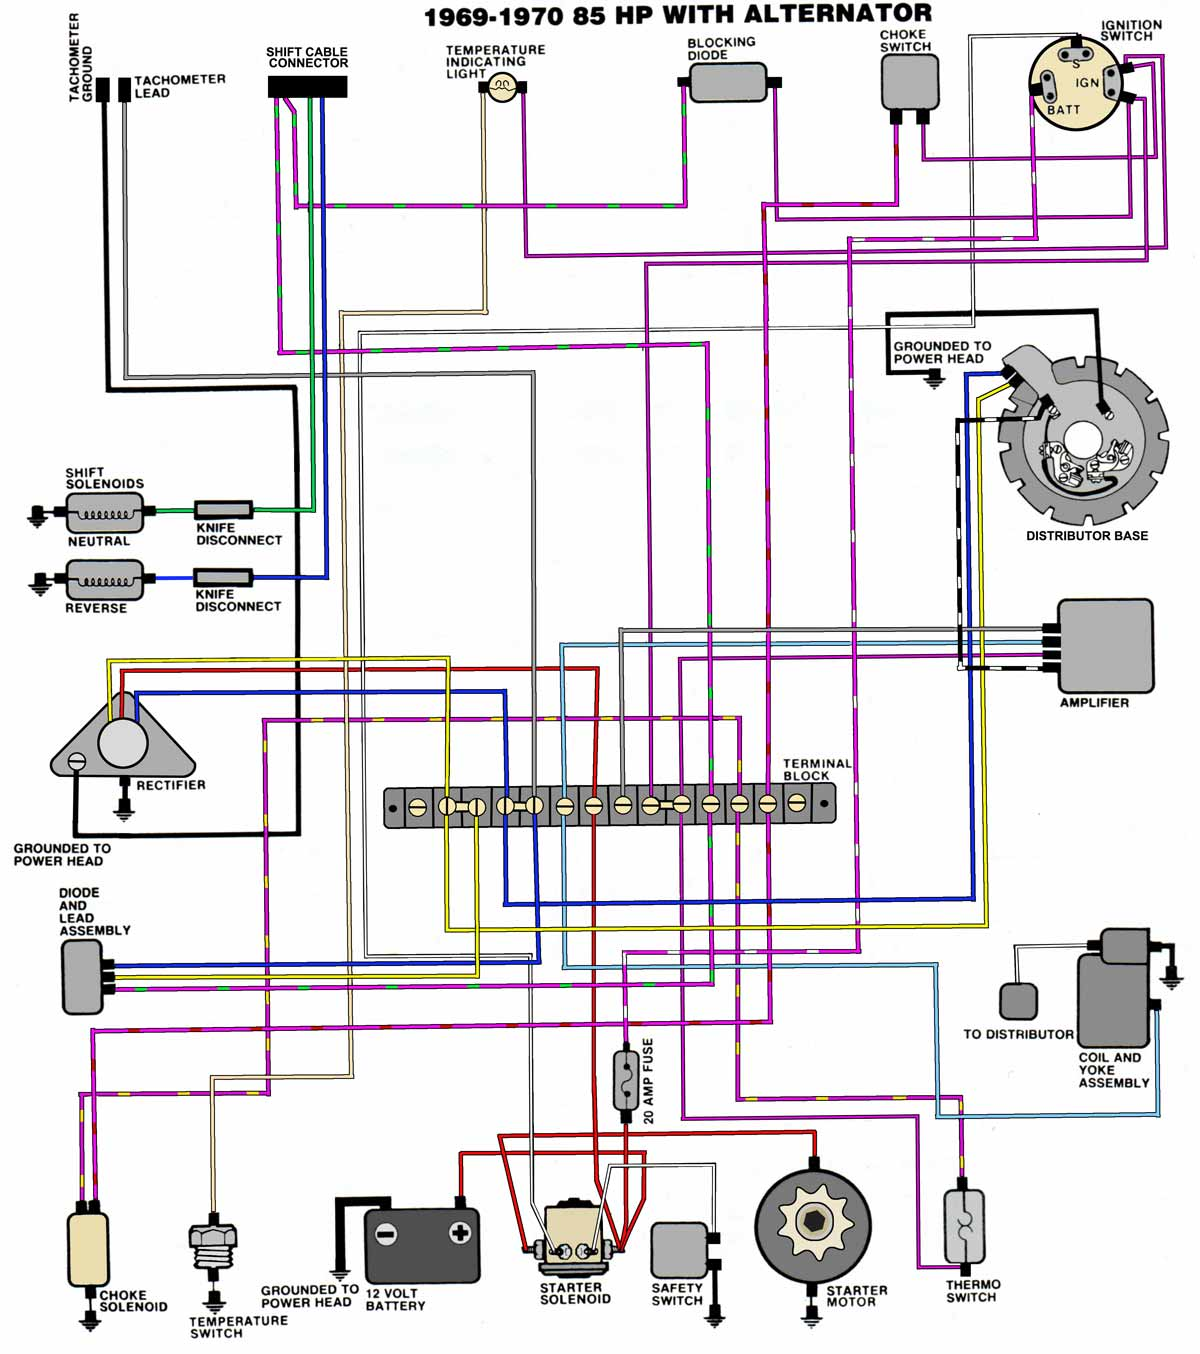 1978 Johnson Outboard Wiring Diagram - 3 Speed Fan Motor Wiring Diagram -  source-auto3.yenpancane.jeanjaures37.fr | 1978 Omc Wiring Diagram |  | Wiring Diagram Resource